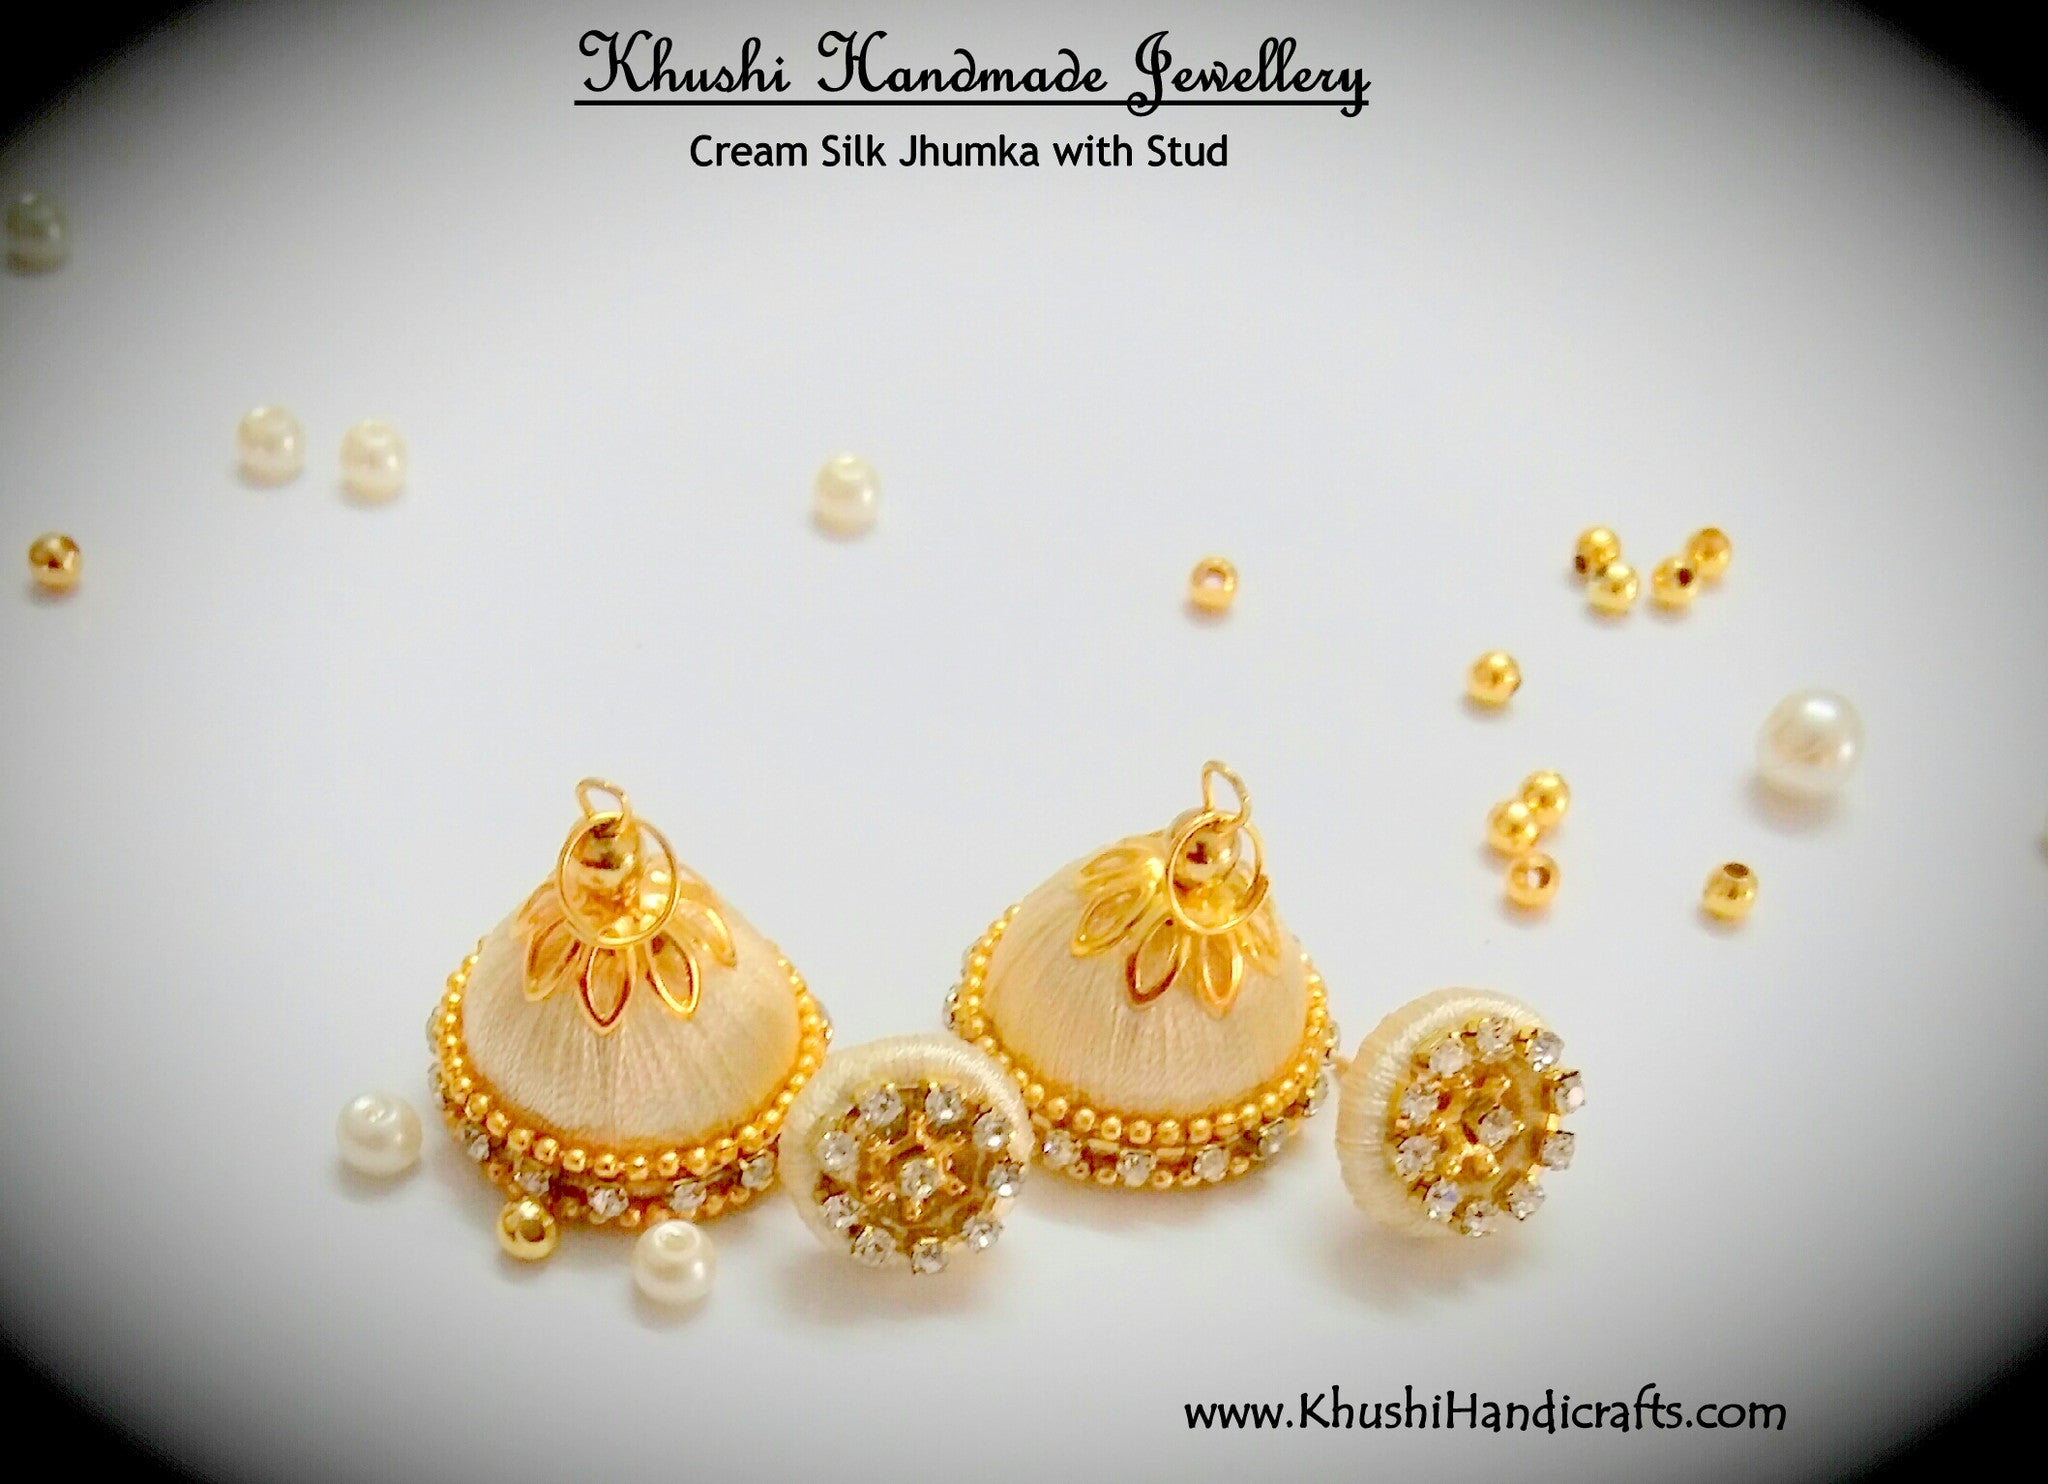 Cream Silk Jhumka